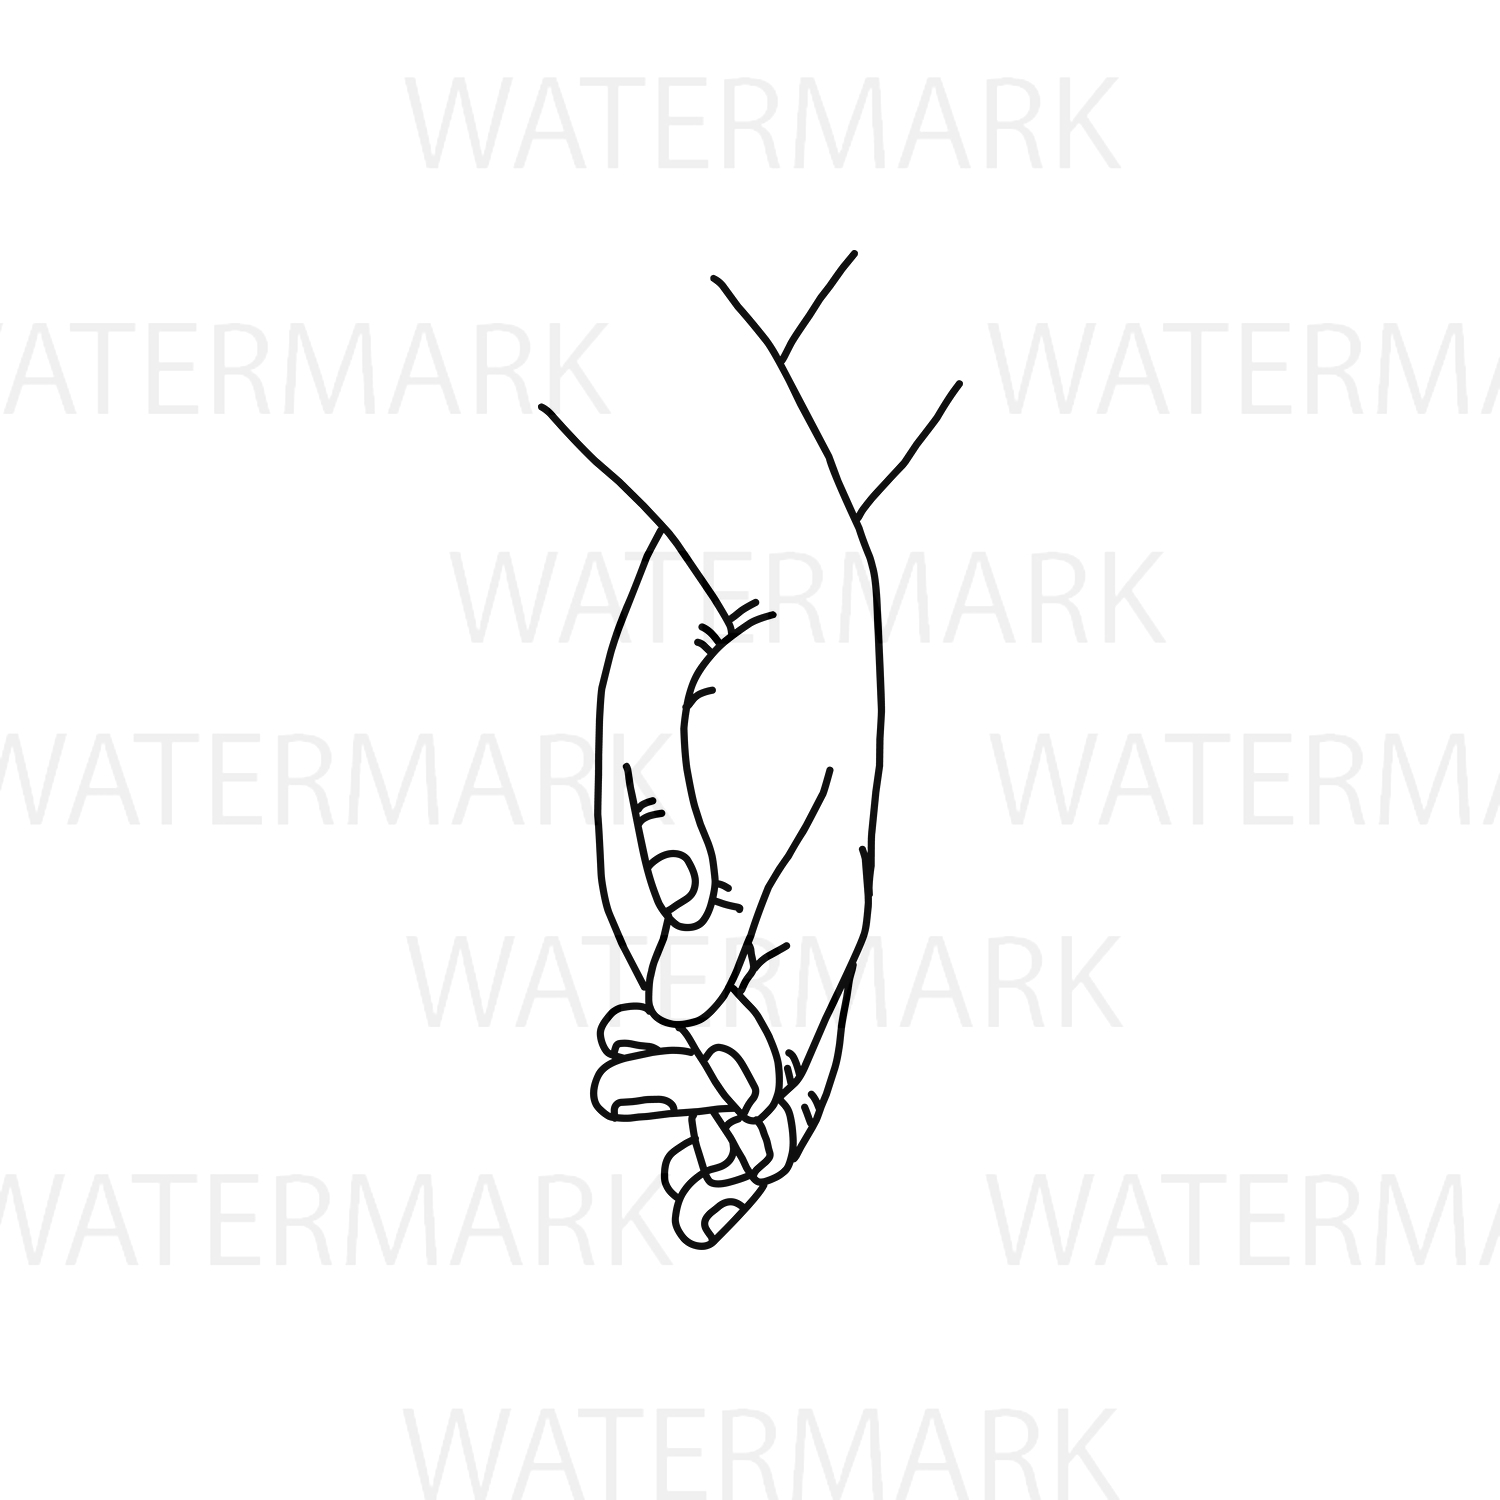 Holding Hand and walk along with love - SVG/JPG/PNG Hand Drawing example image 2